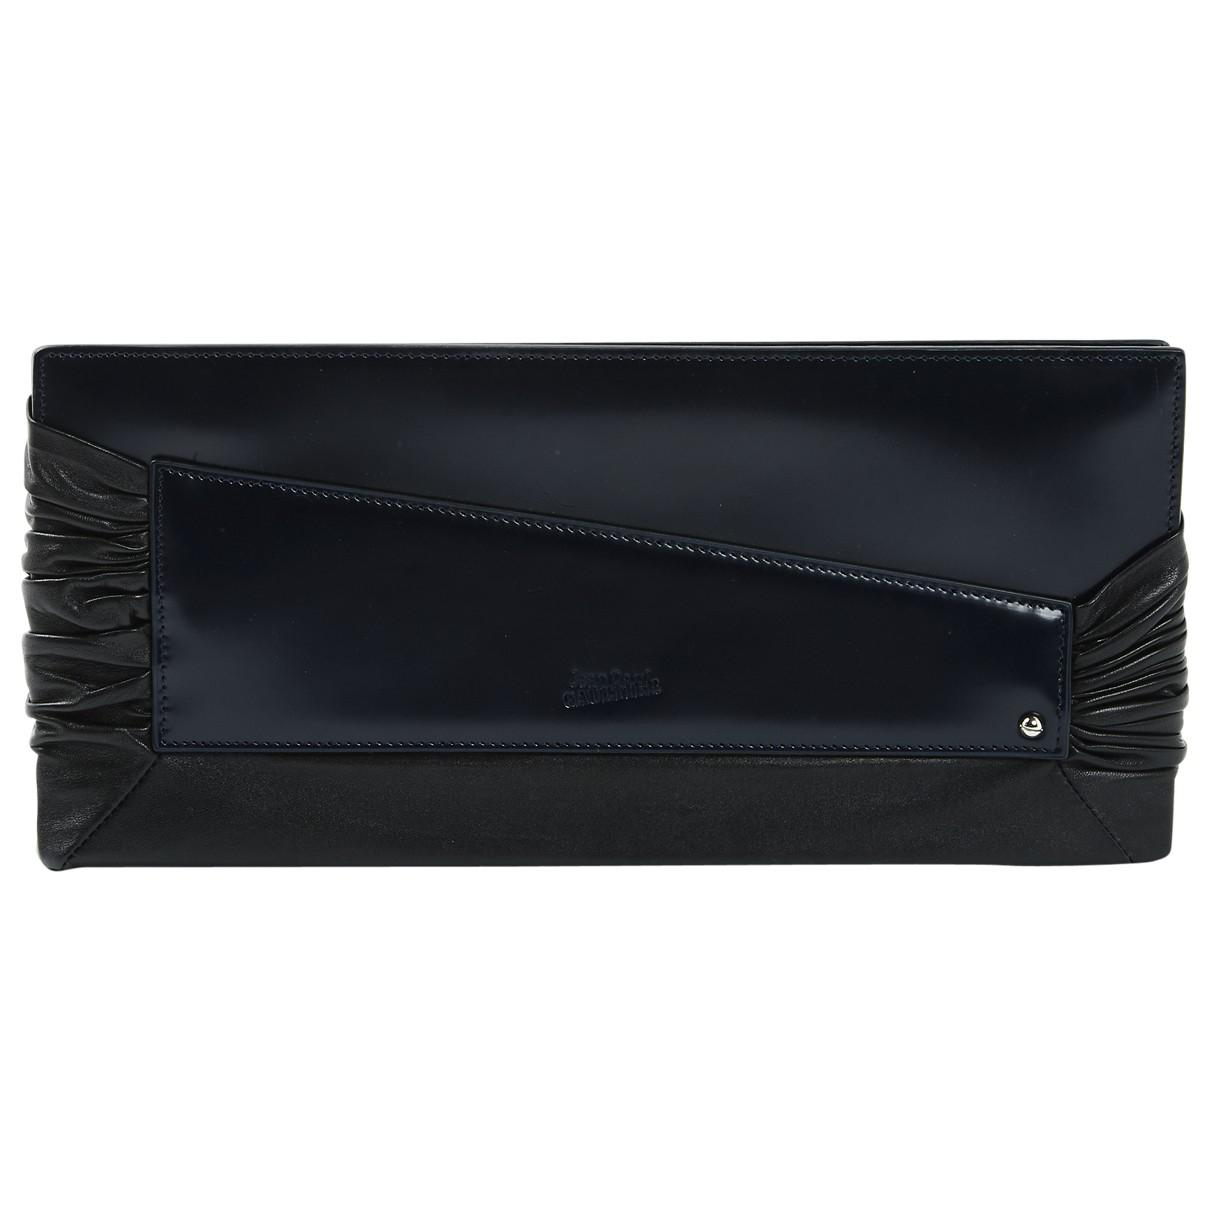 Jean Paul Gaultier Pre-owned - Clutch bag 00imOztu0